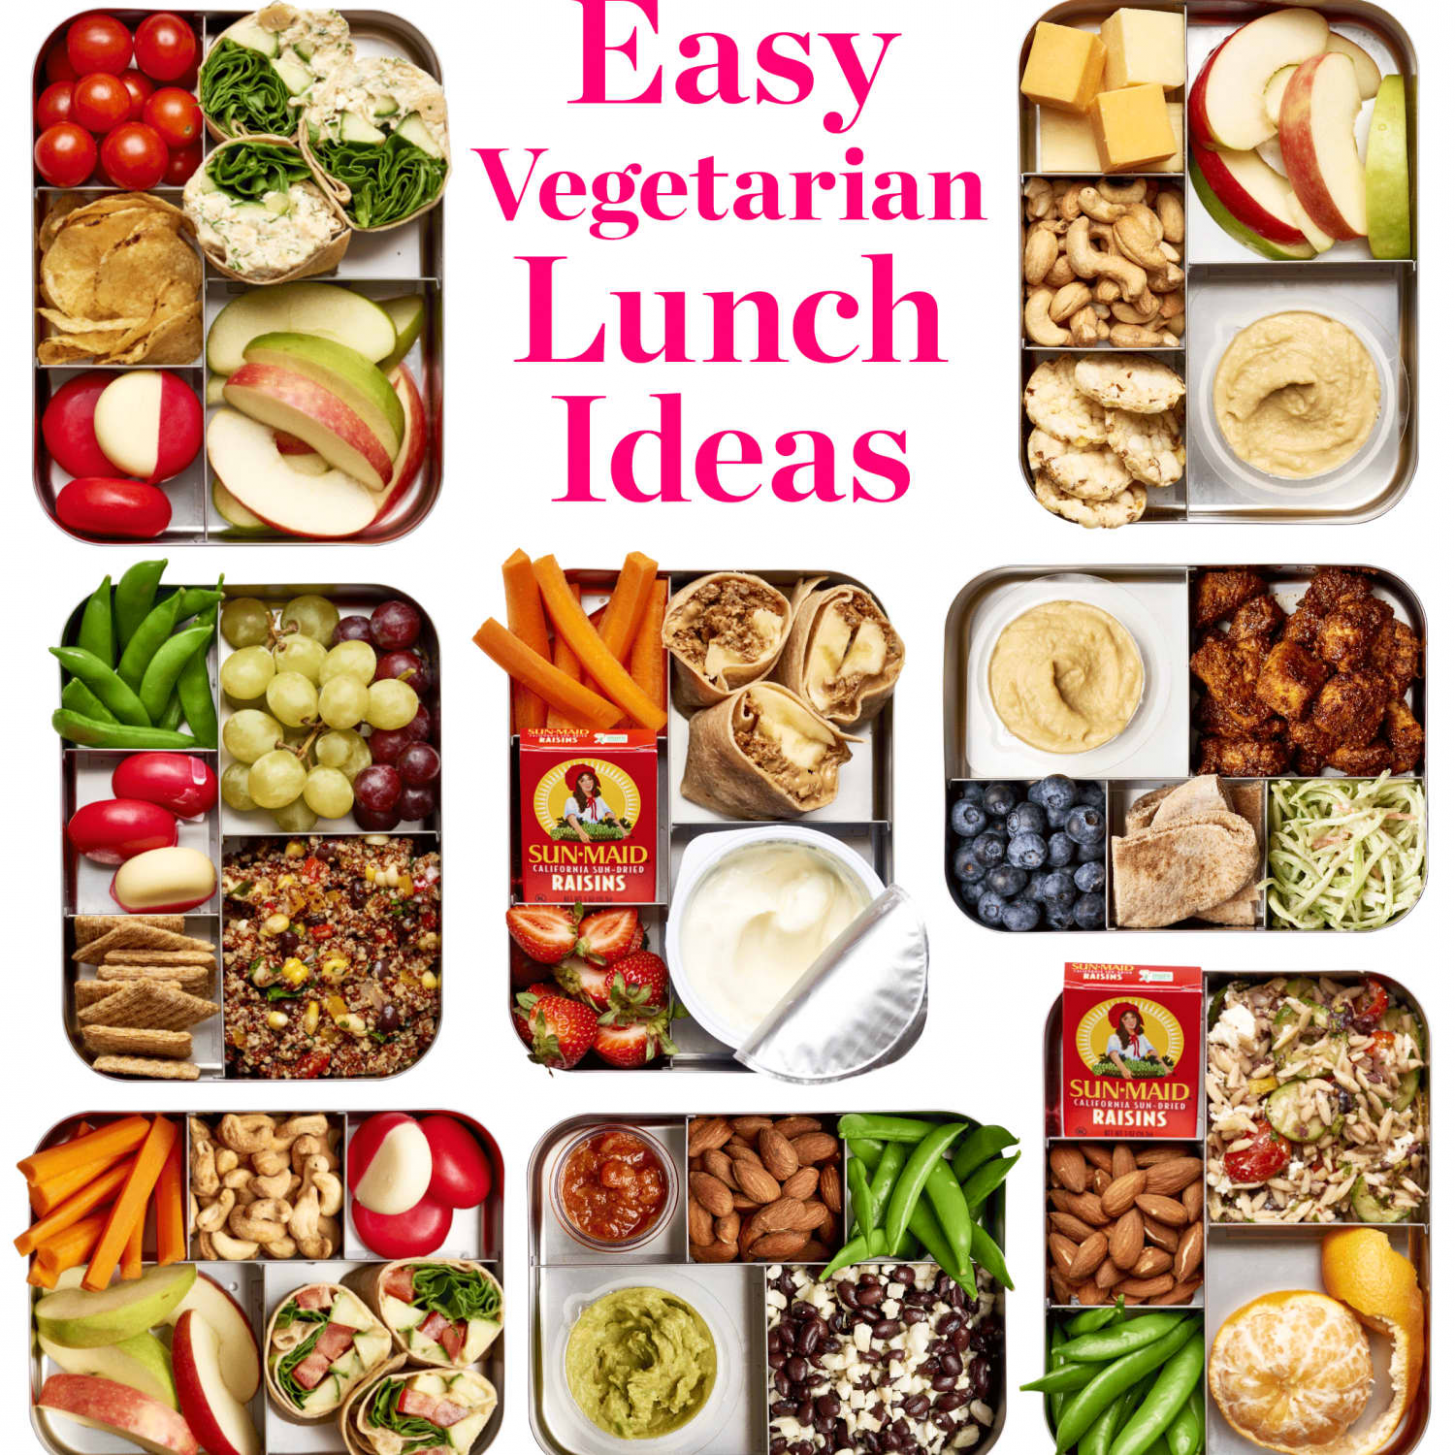 Easy Vegetarian Lunch Ideas | Kitchn - recipes vegetarian lunch